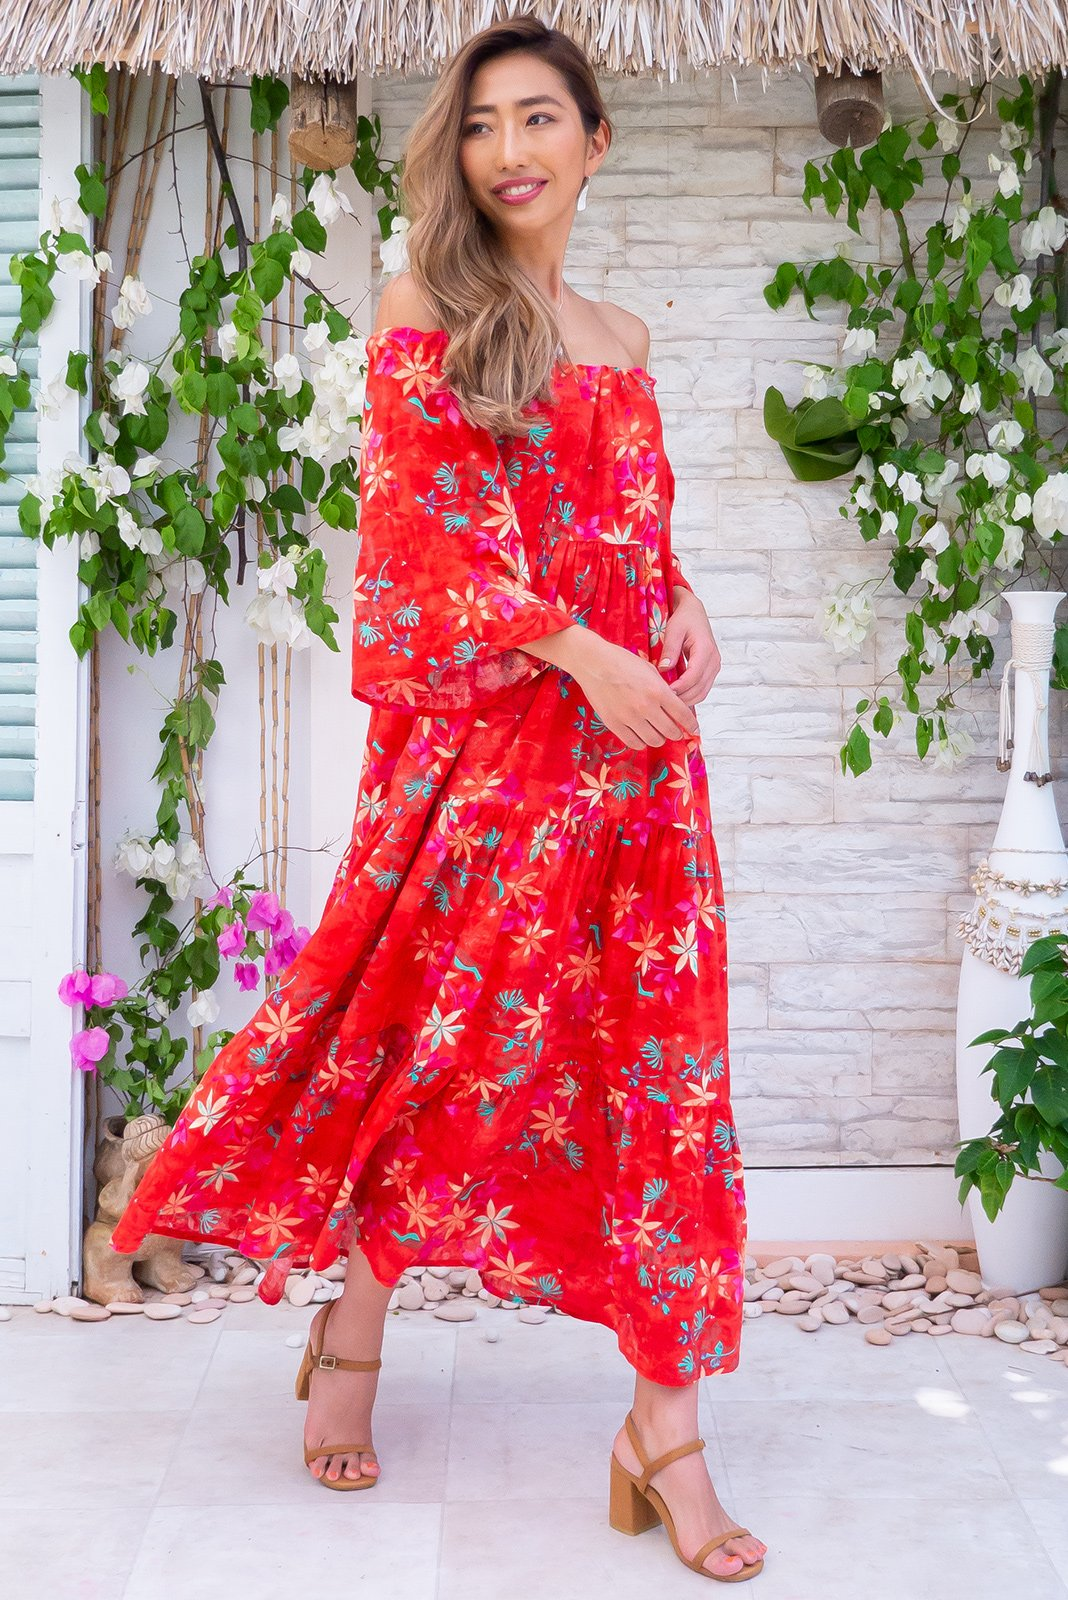 Lulu Liberty Rad Red Maxi Swing Dress can be worn 2 ways, off the shoulder style and on top of shoulders in scooped neck style having side pockets in bold vermillion orange/red with pink, green and yellow floral woven 100% cotton and fabric belt included to cinch in waist.